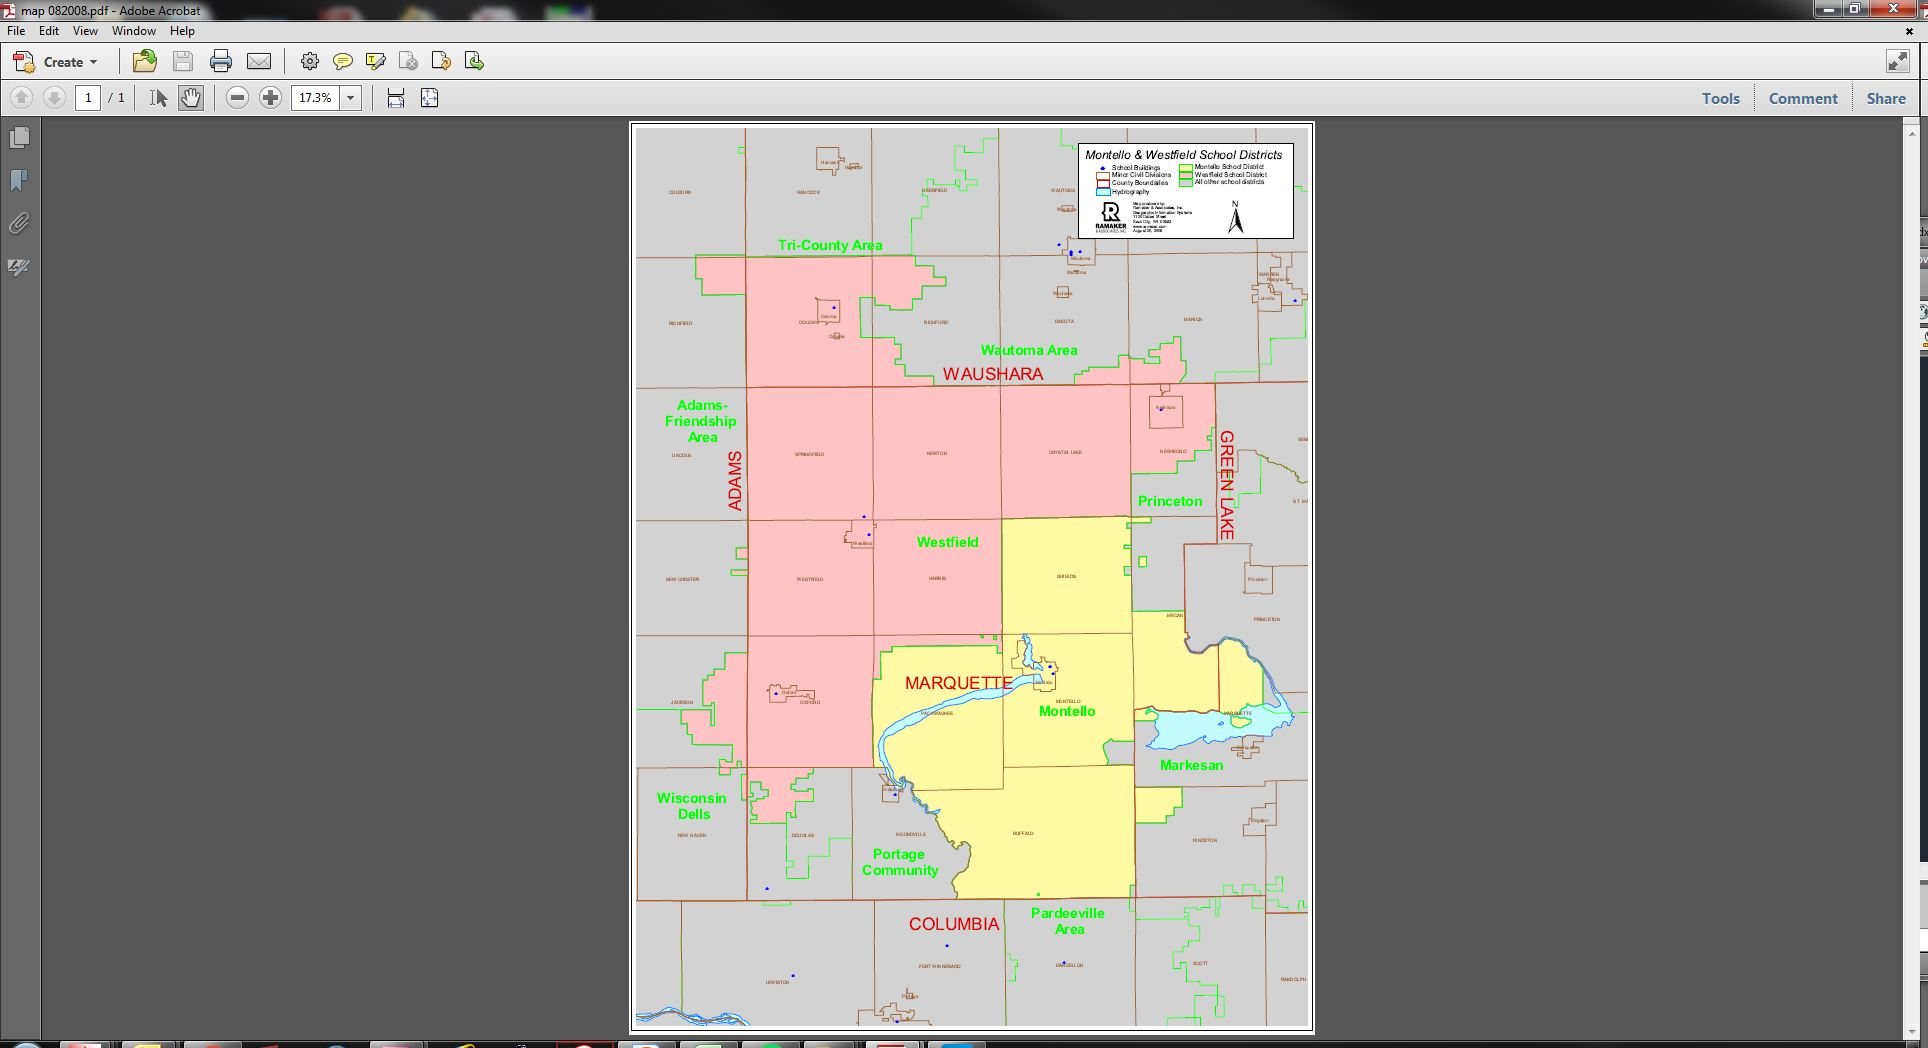 Screenshot of the GIS being used